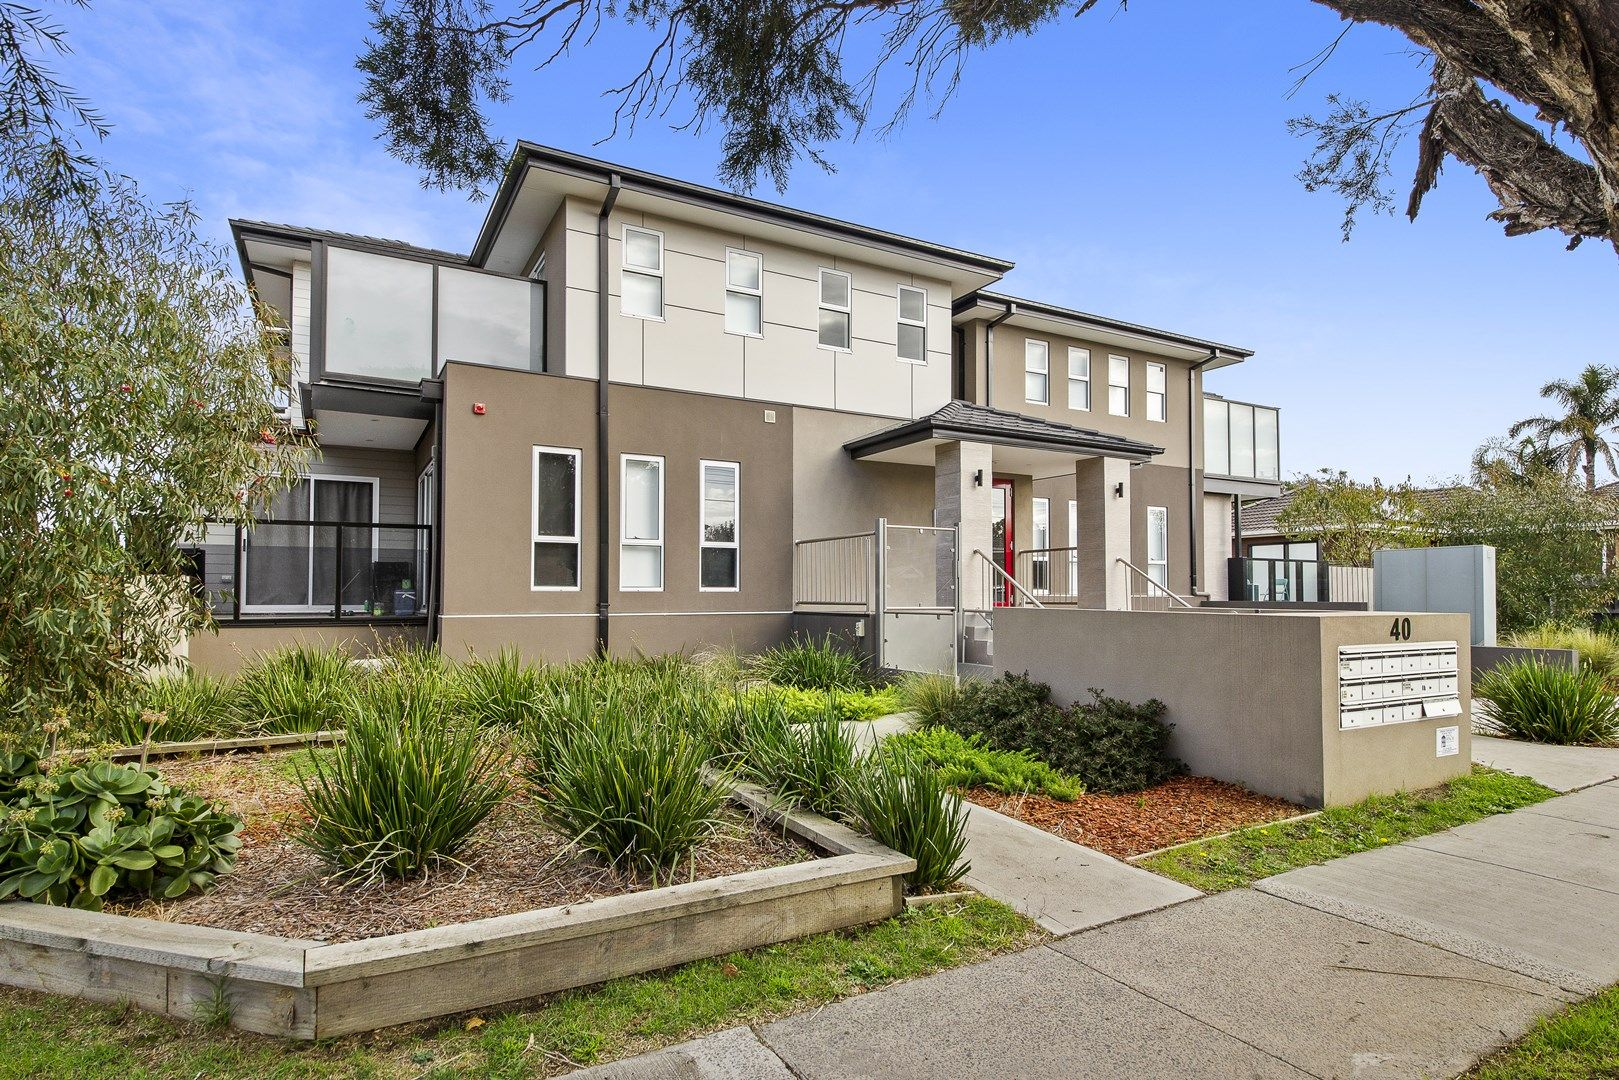 4/40 Bettina Street, Clayton VIC 3168, Image 1